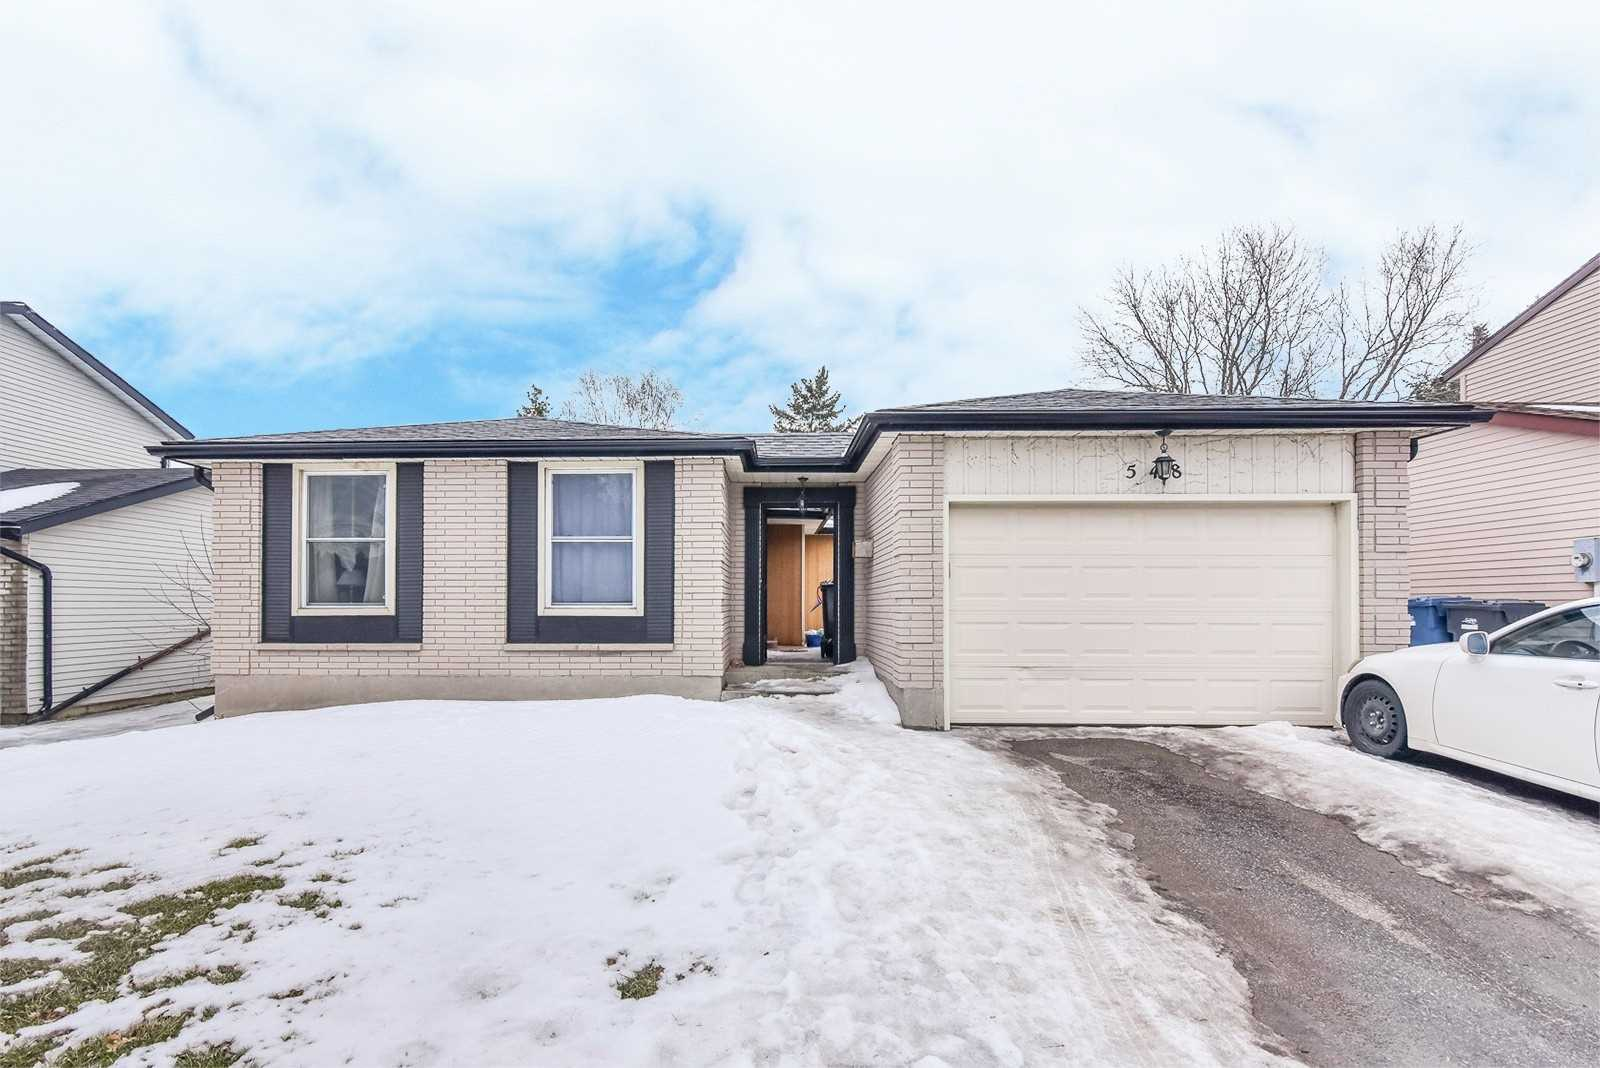 pictures of 548 Kortright Rd W, Guelph N1G 3N4